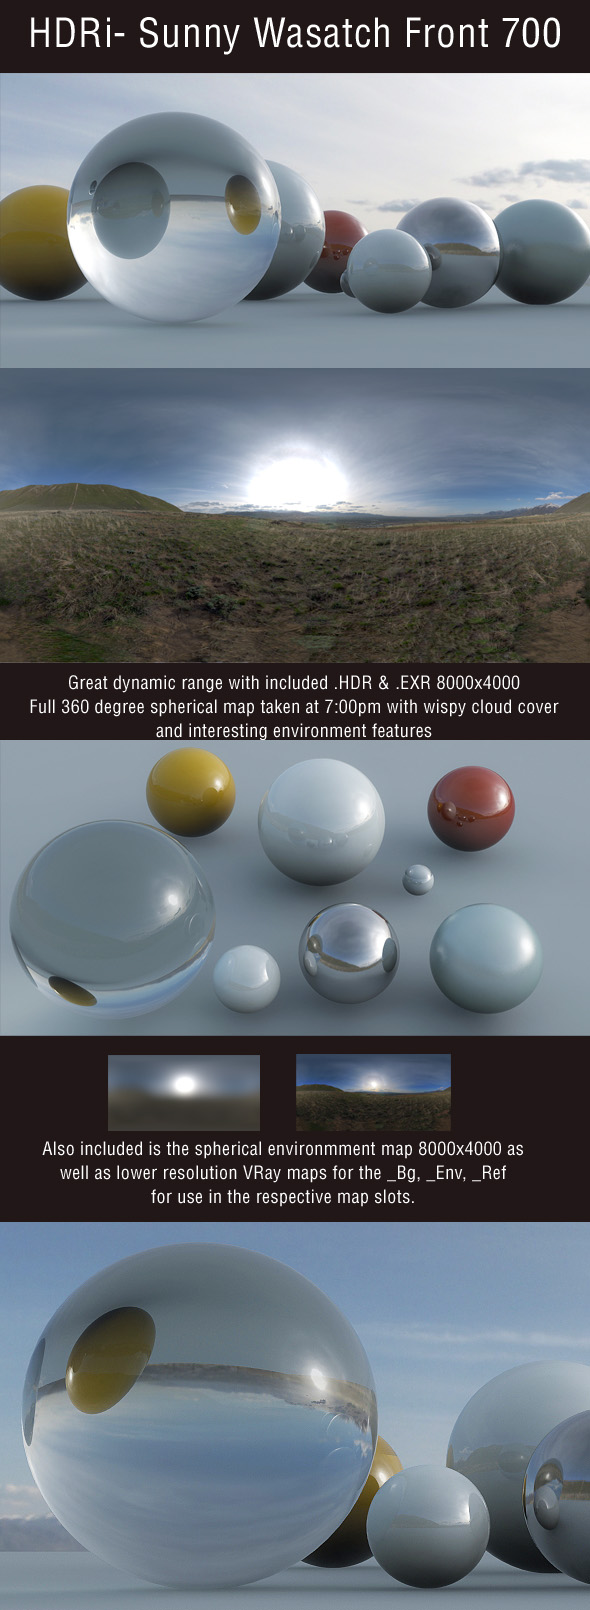 HDRi - Sunny Wasatch Front 700 - 3DOcean Item for Sale